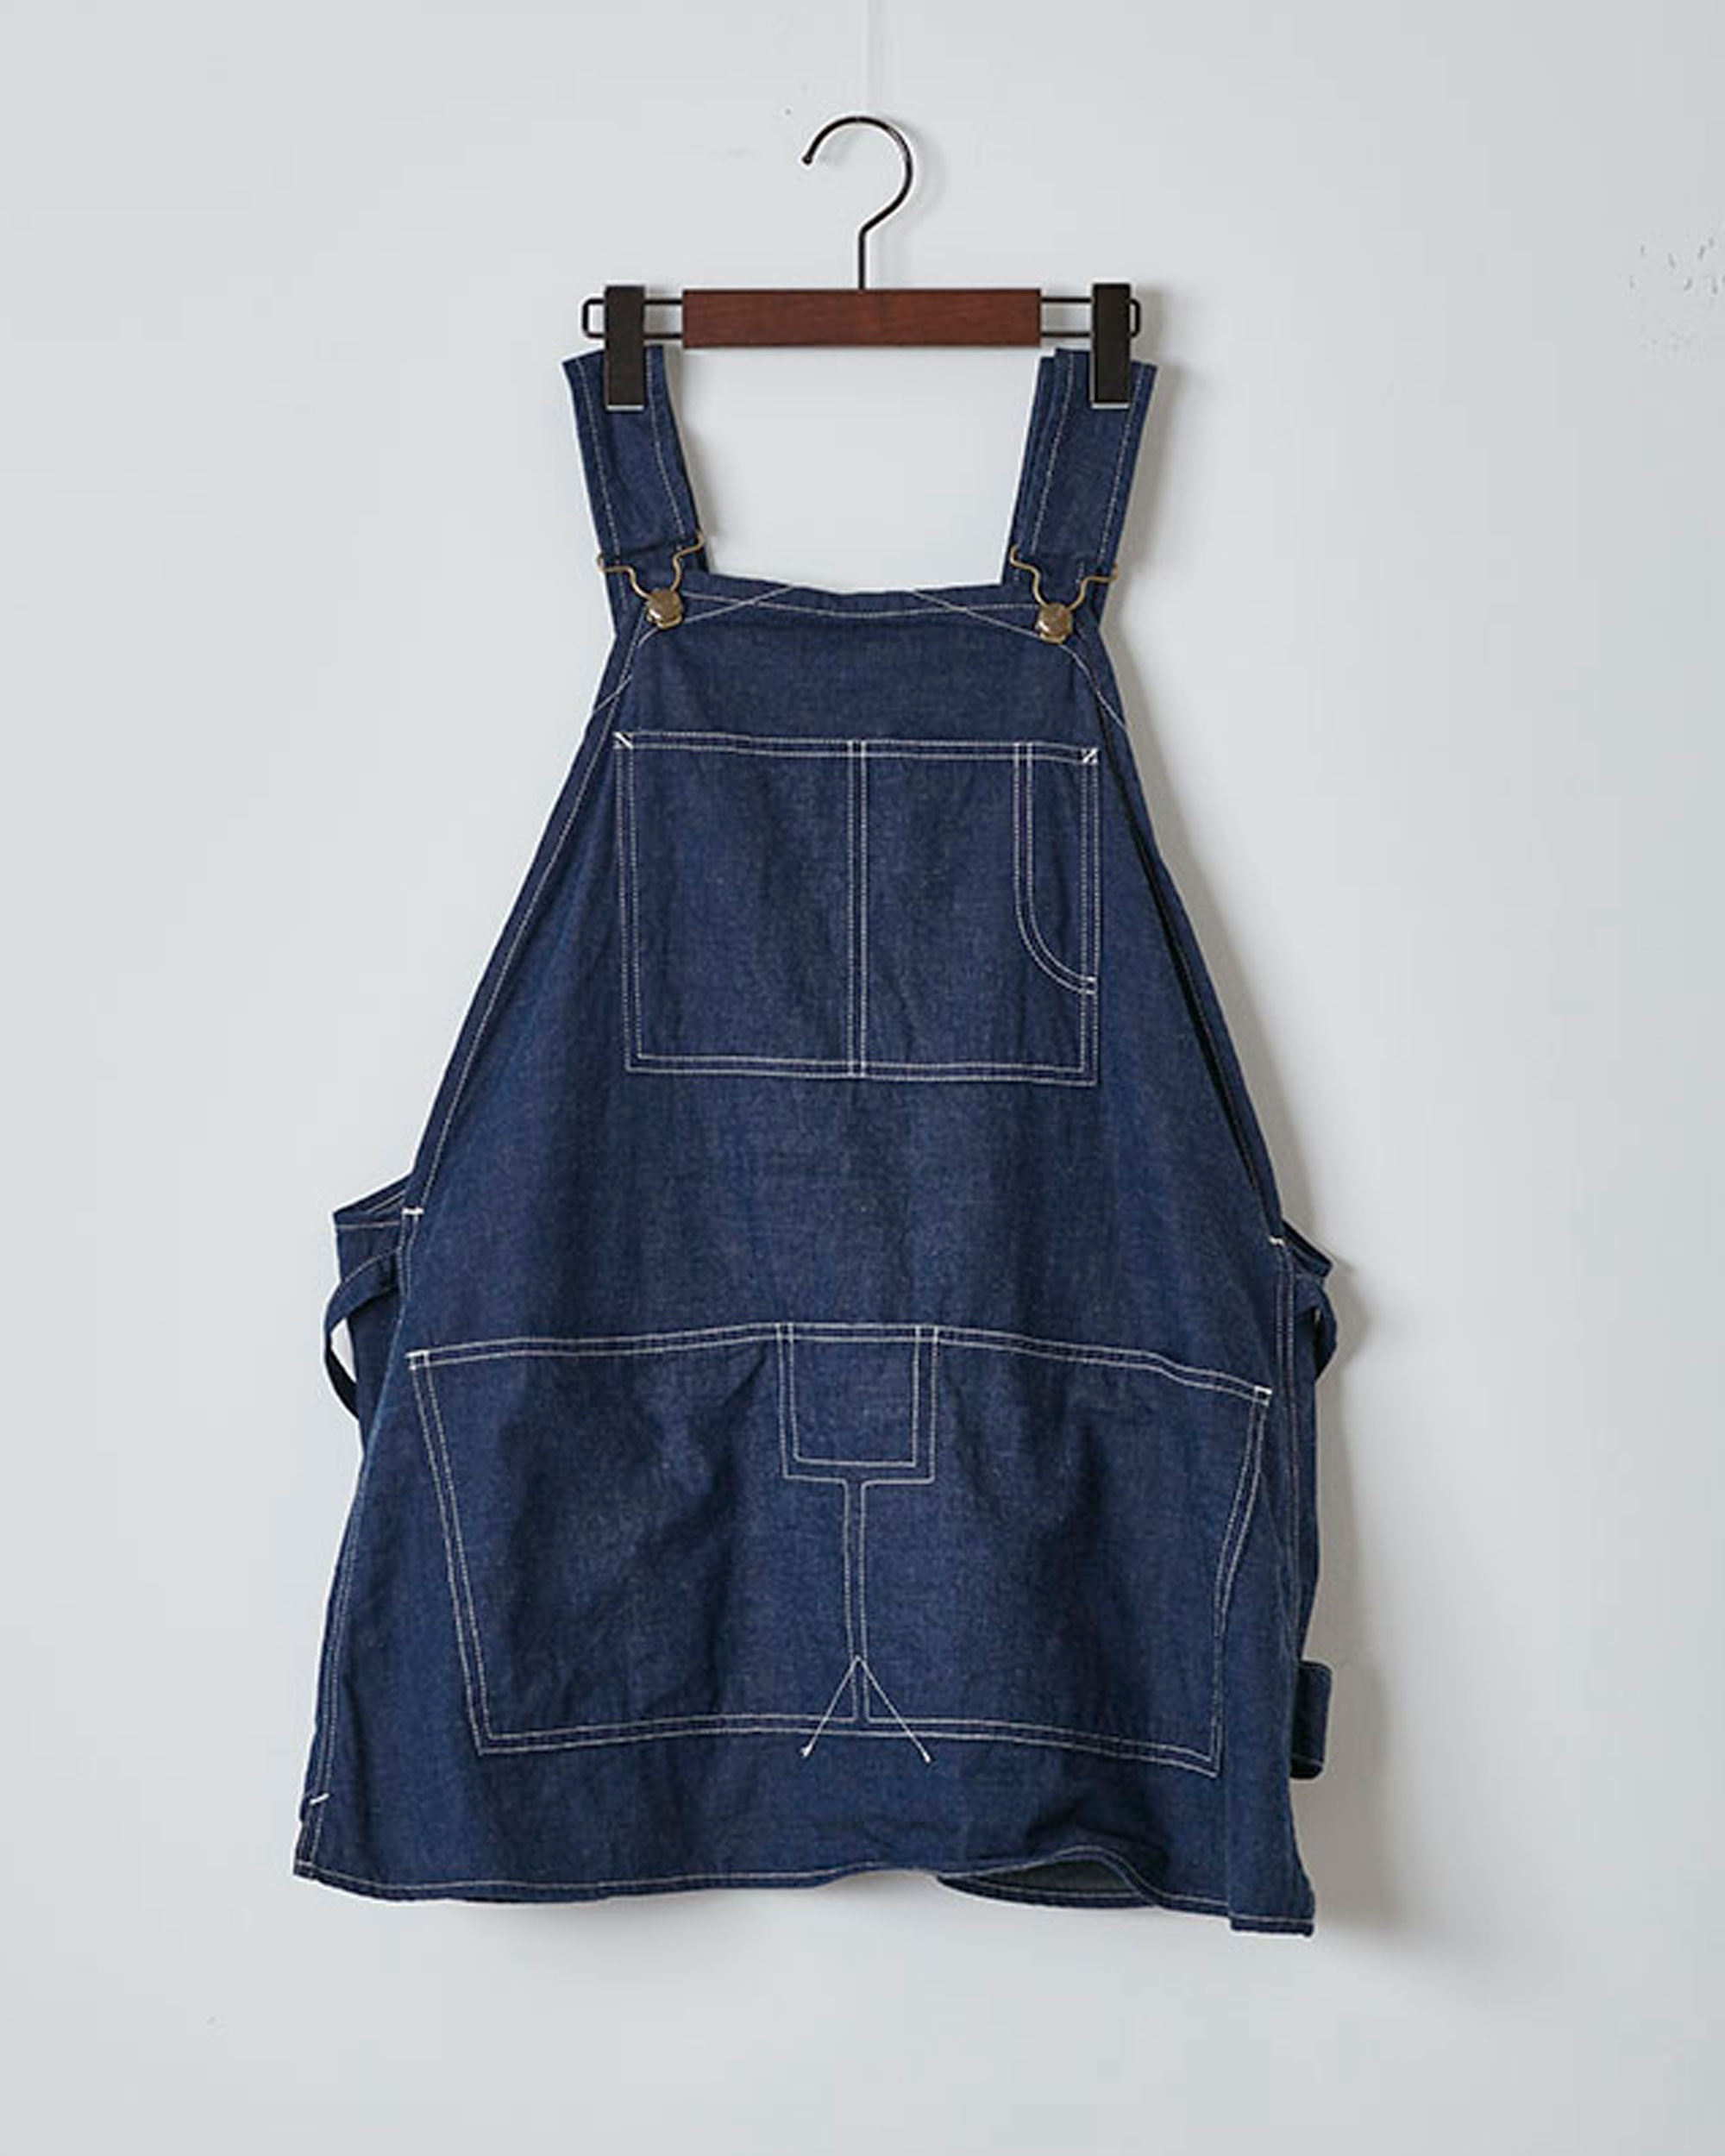 UTILITY DENIM APRON 2nd